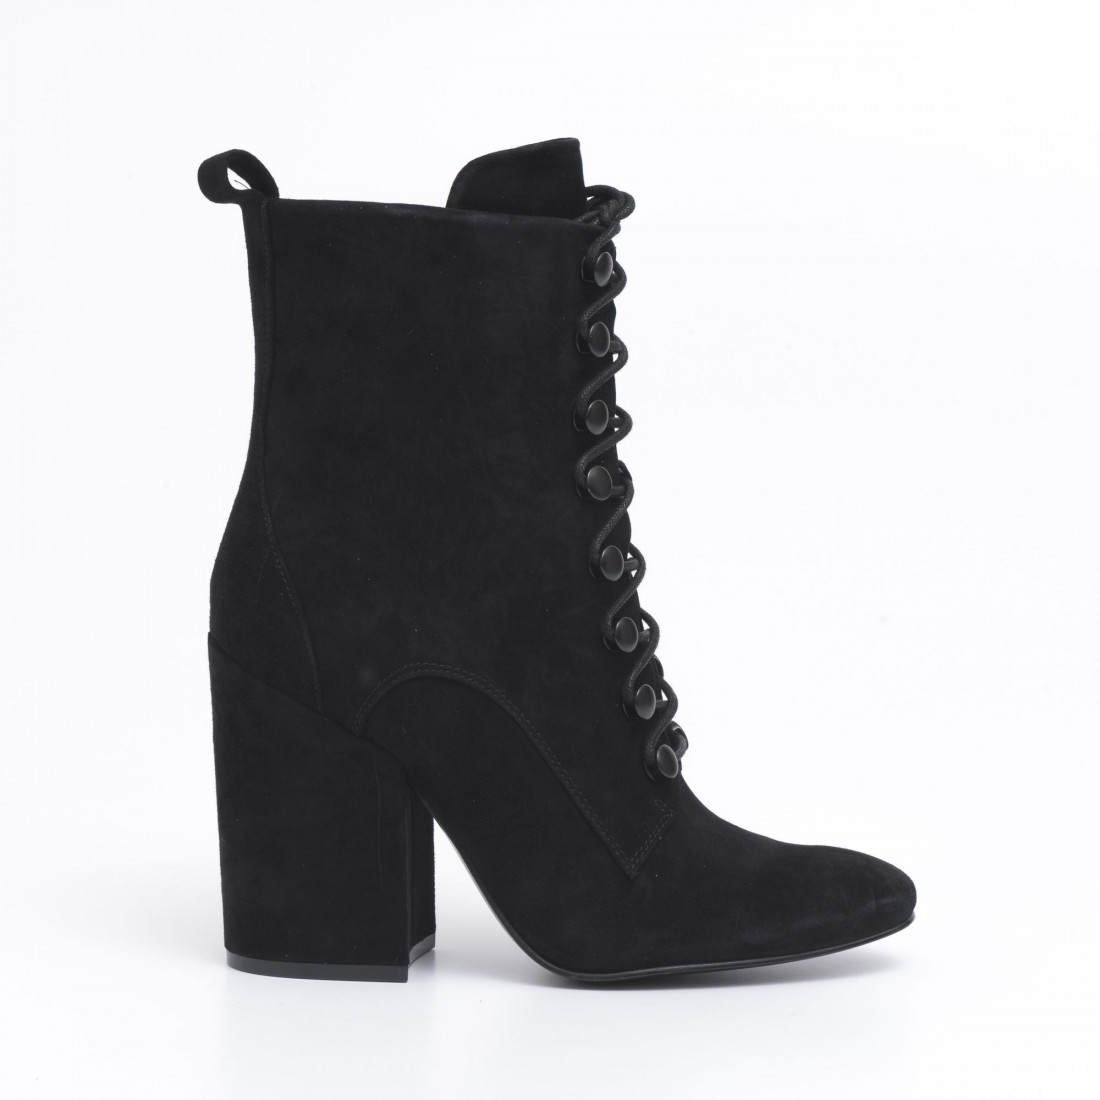 Lace up Bridget ankle boots in black suede